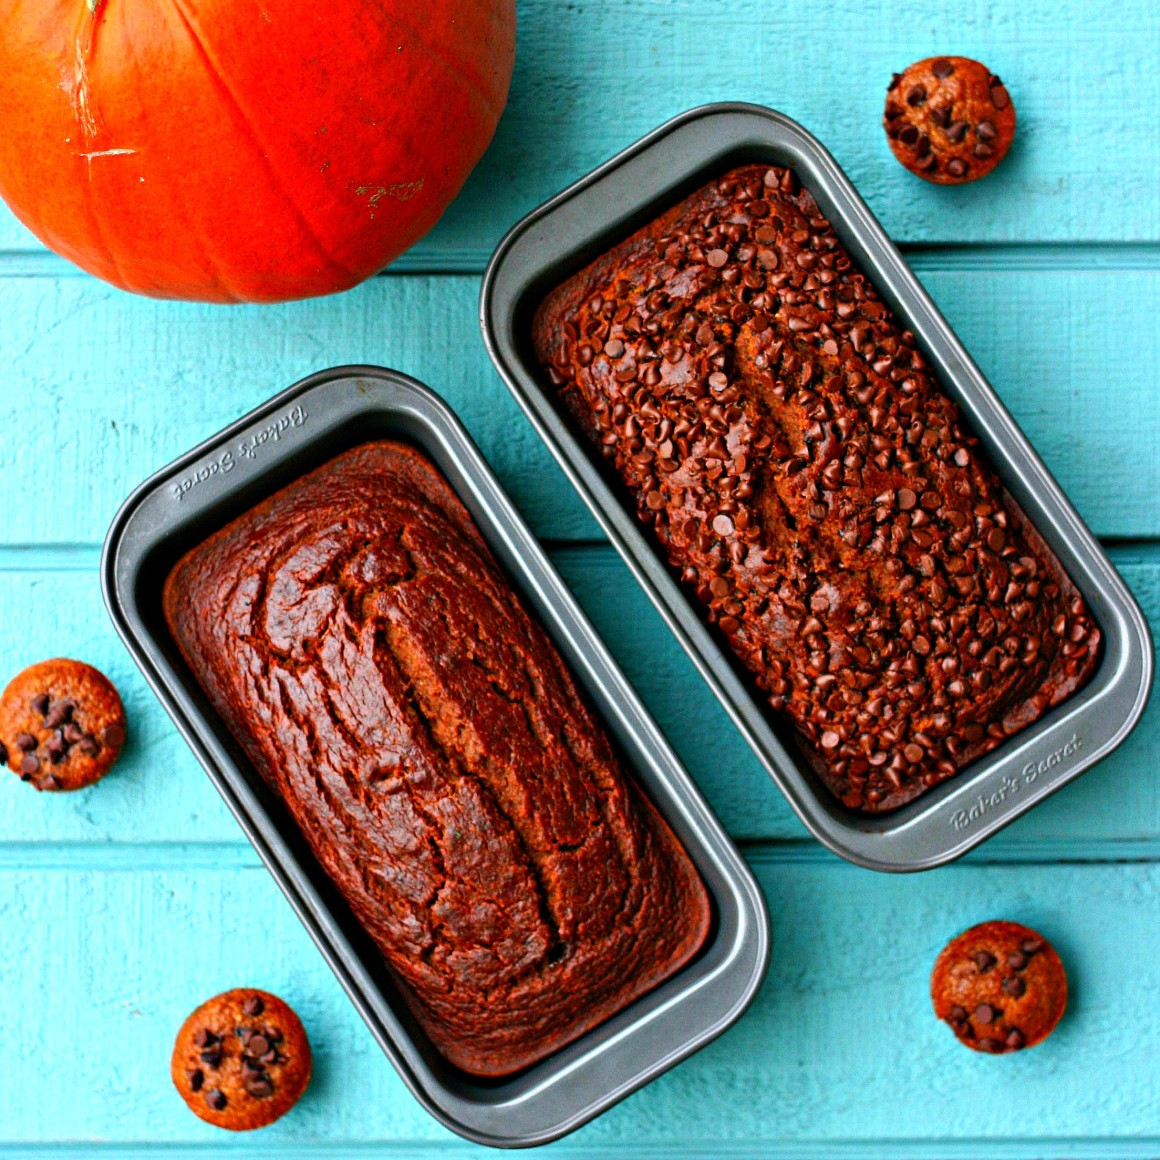 I want to try making these. I love how they give you all the skills to cook/bake from scratch and make it easy! Building on Basics- Gluten Free Pumpin Bread Recipe (also makes great Mini Pumpkin Muffins!)